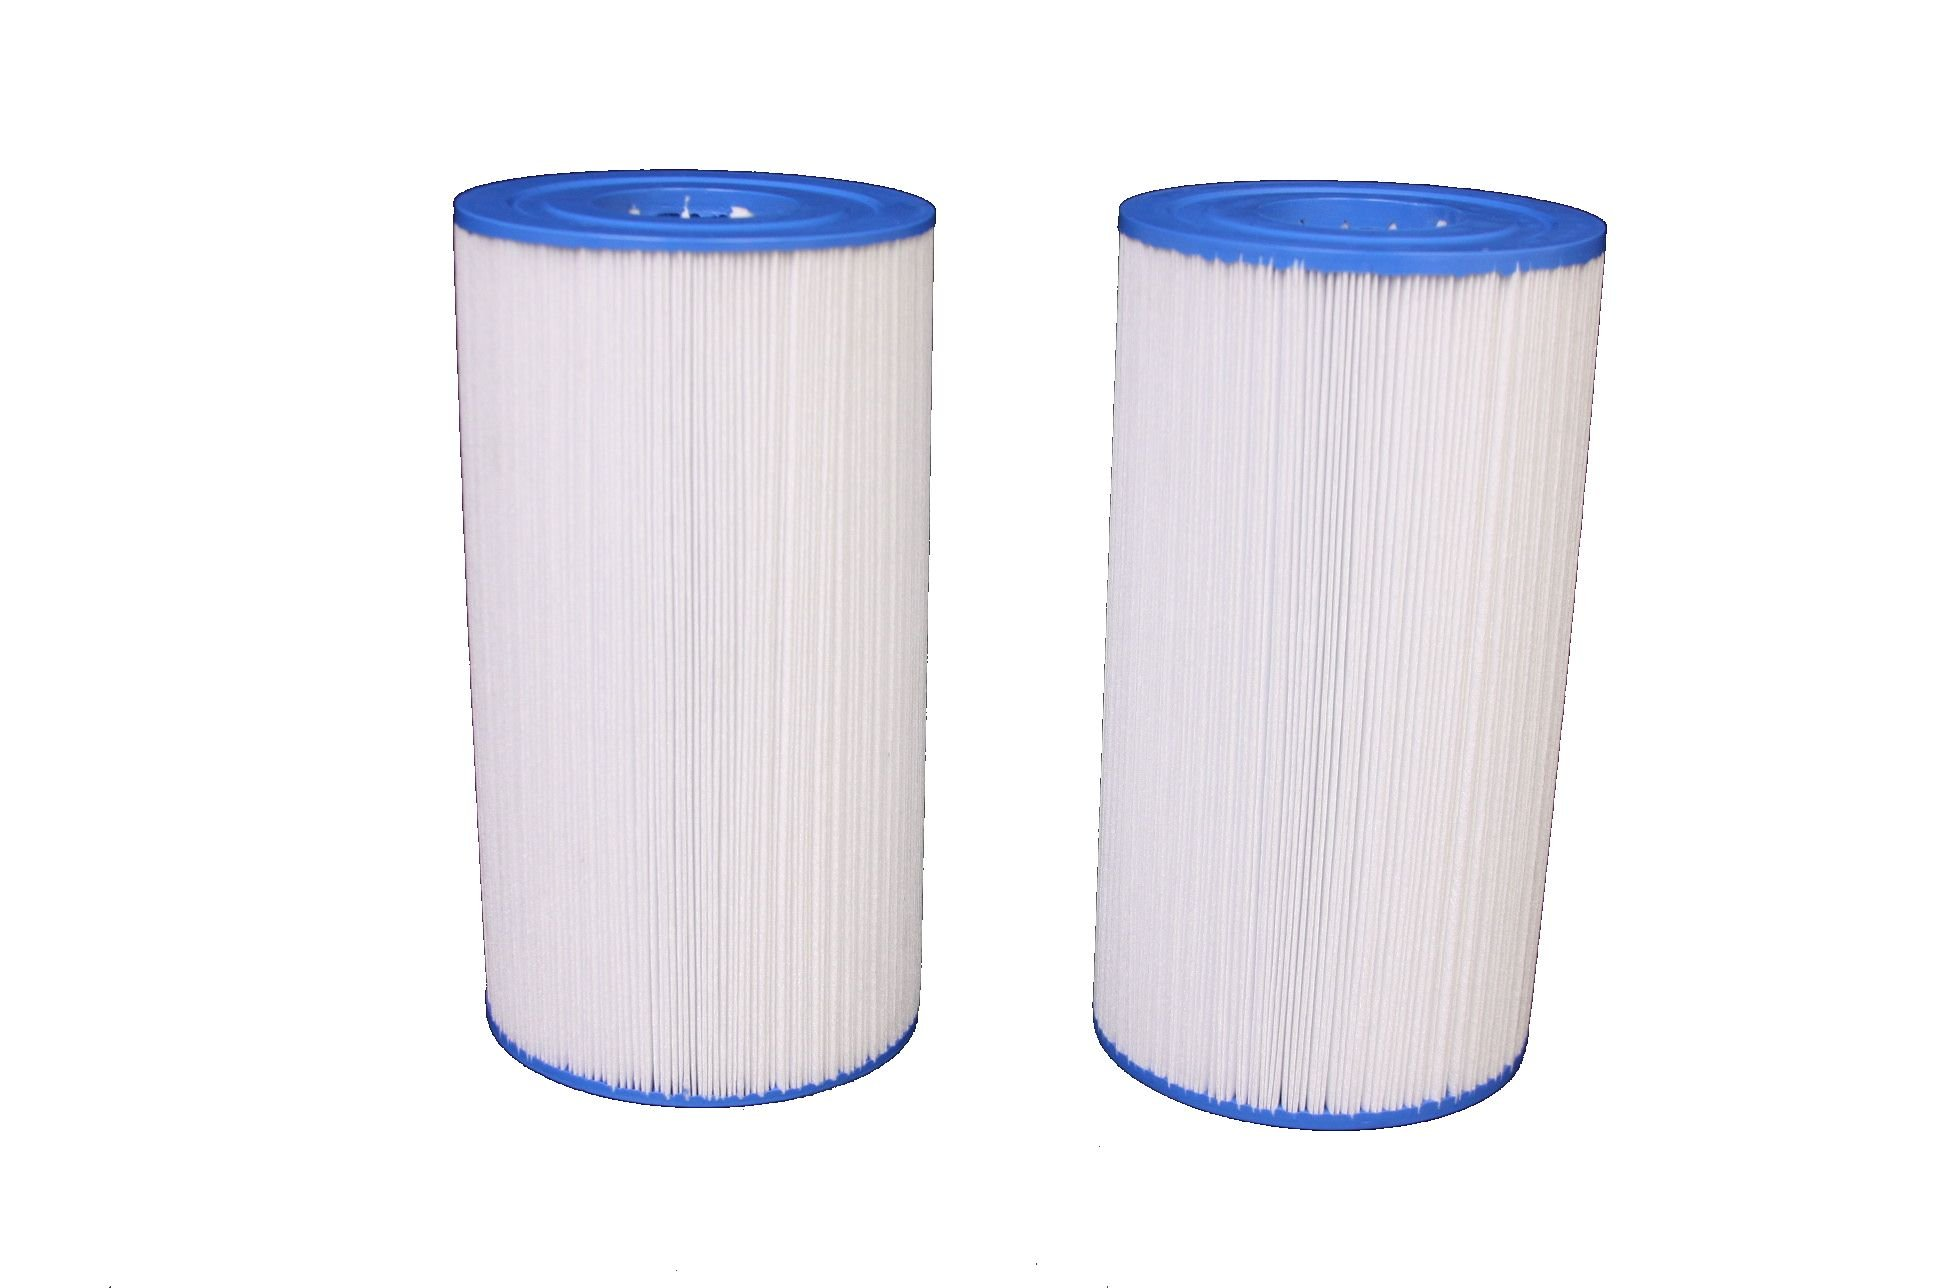 2 Guardian Pool Spa Filter Replaces Unicel C-4335 PRB35-IN - FC-2385 - Rainbow Dynamic Series IV by Guardian Filtration Products